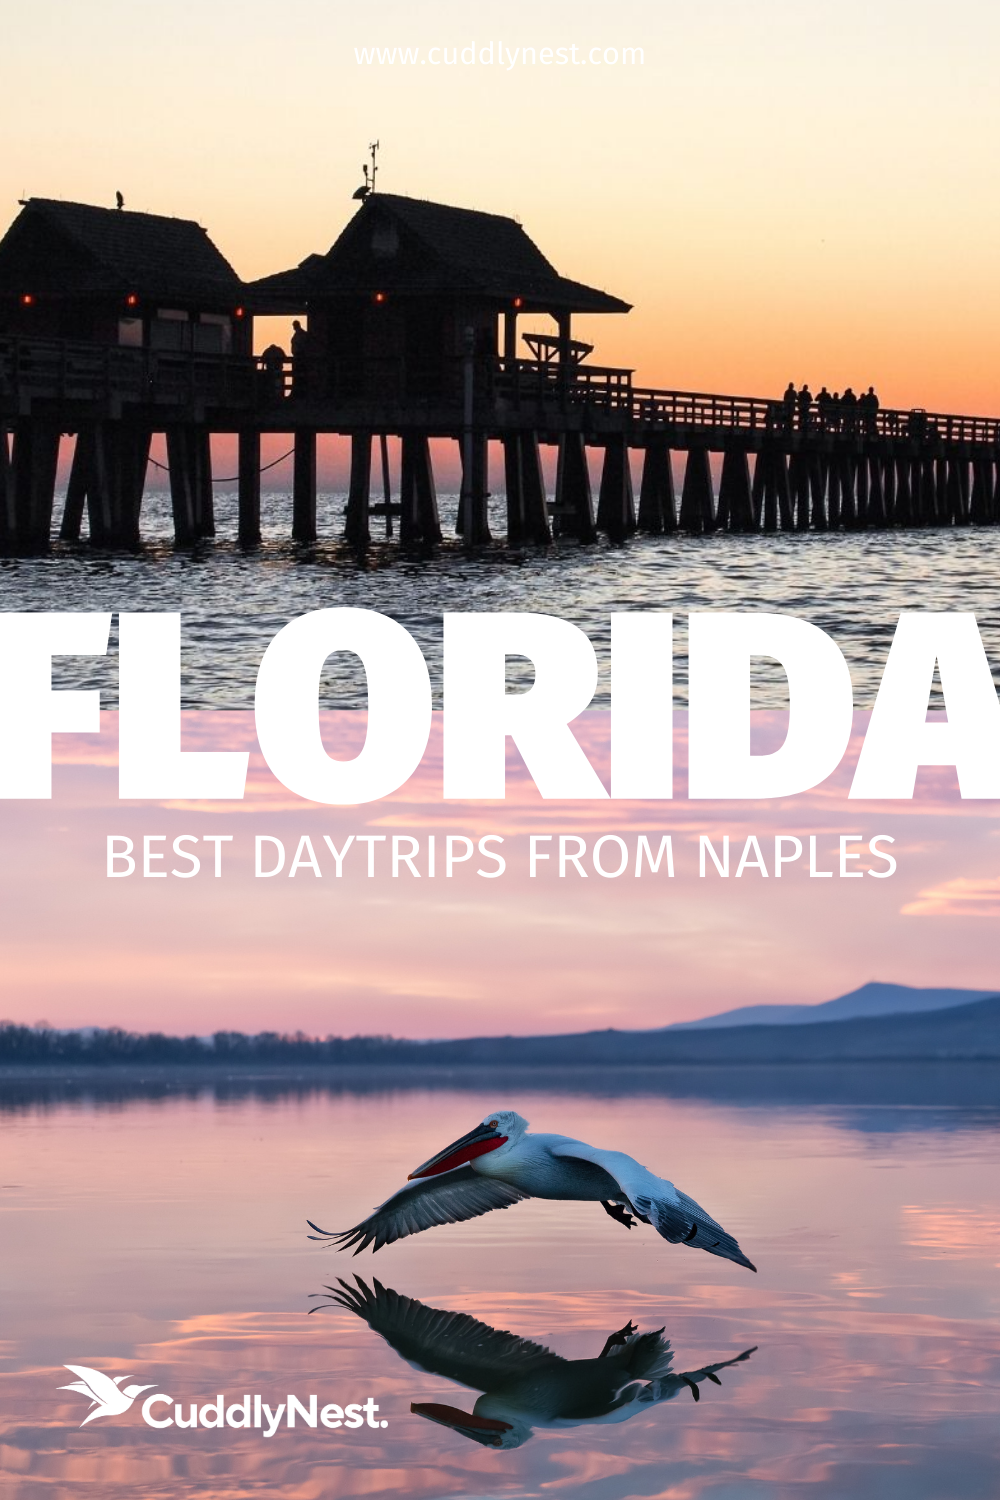 10 Best Day Trips From Naples 2021 W Photos Cuddlynest Travel Blog In 2021 North America Travel Destinations Holiday Travel Destinations West Coast Travel